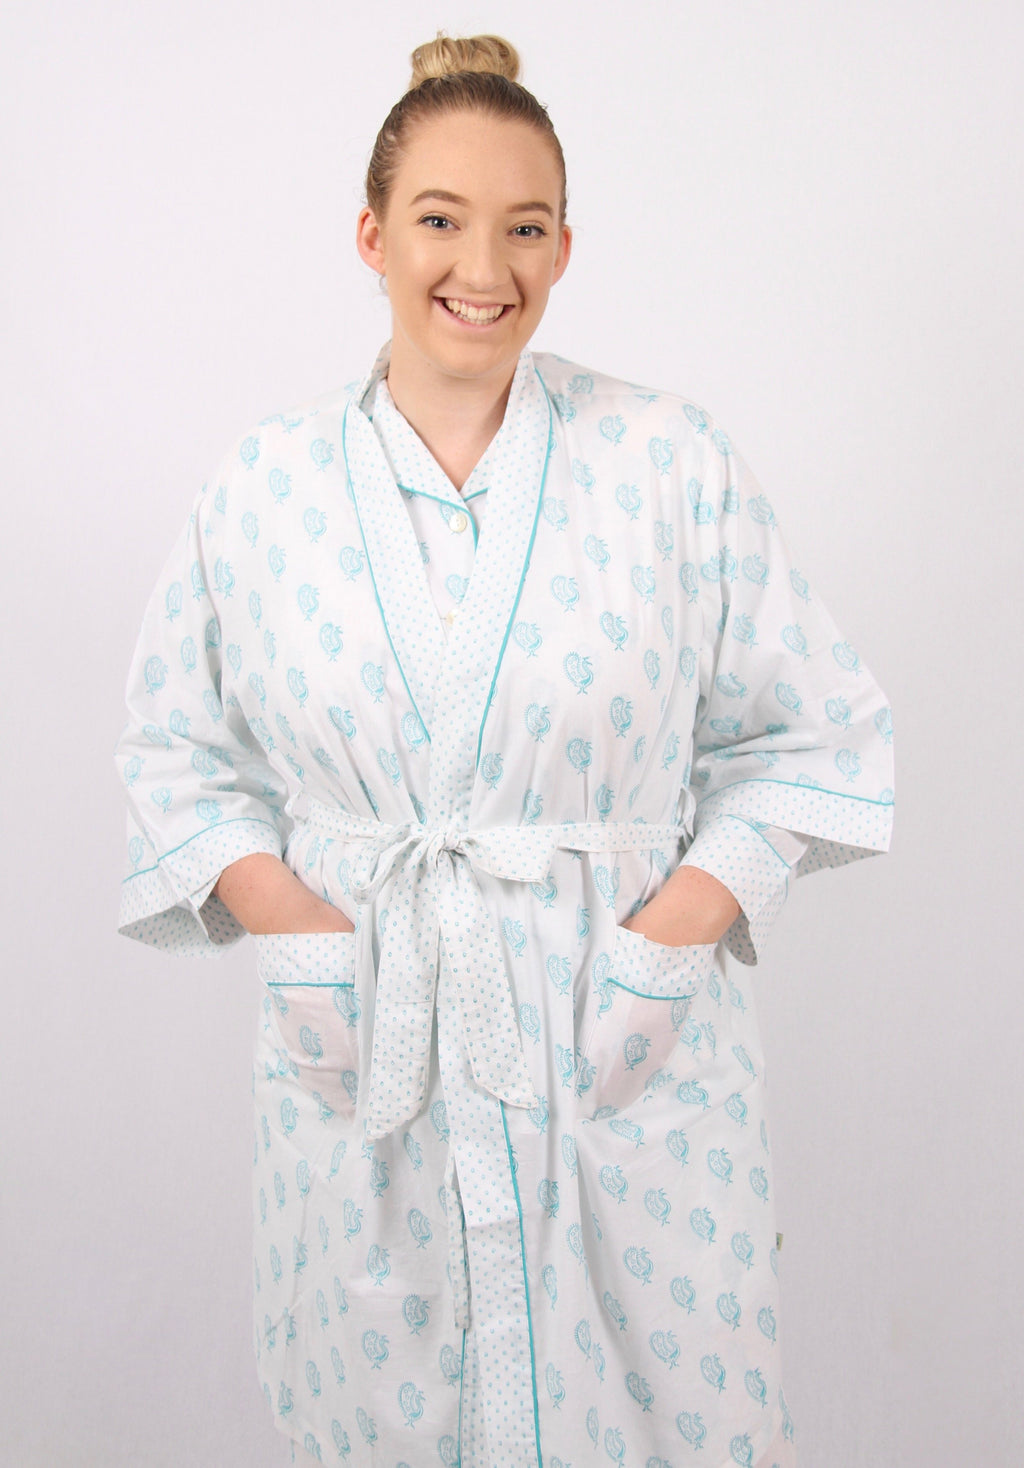 Chandrakin dressing gown / bath robe / brunch coat